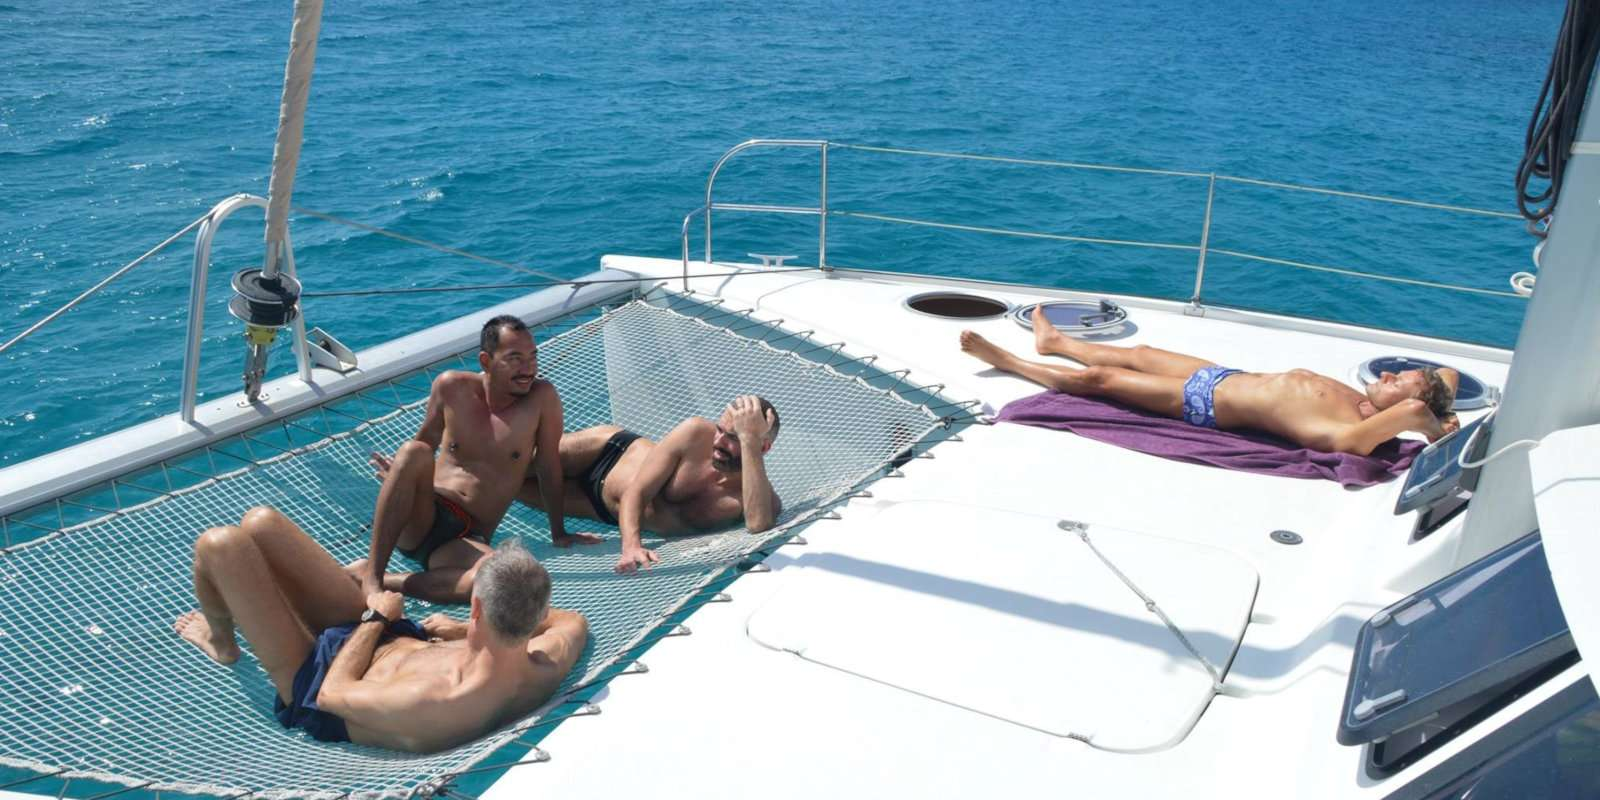 Relax and enjoy the stunning beaches and islands off the Croatian coast on this gay nude cruise